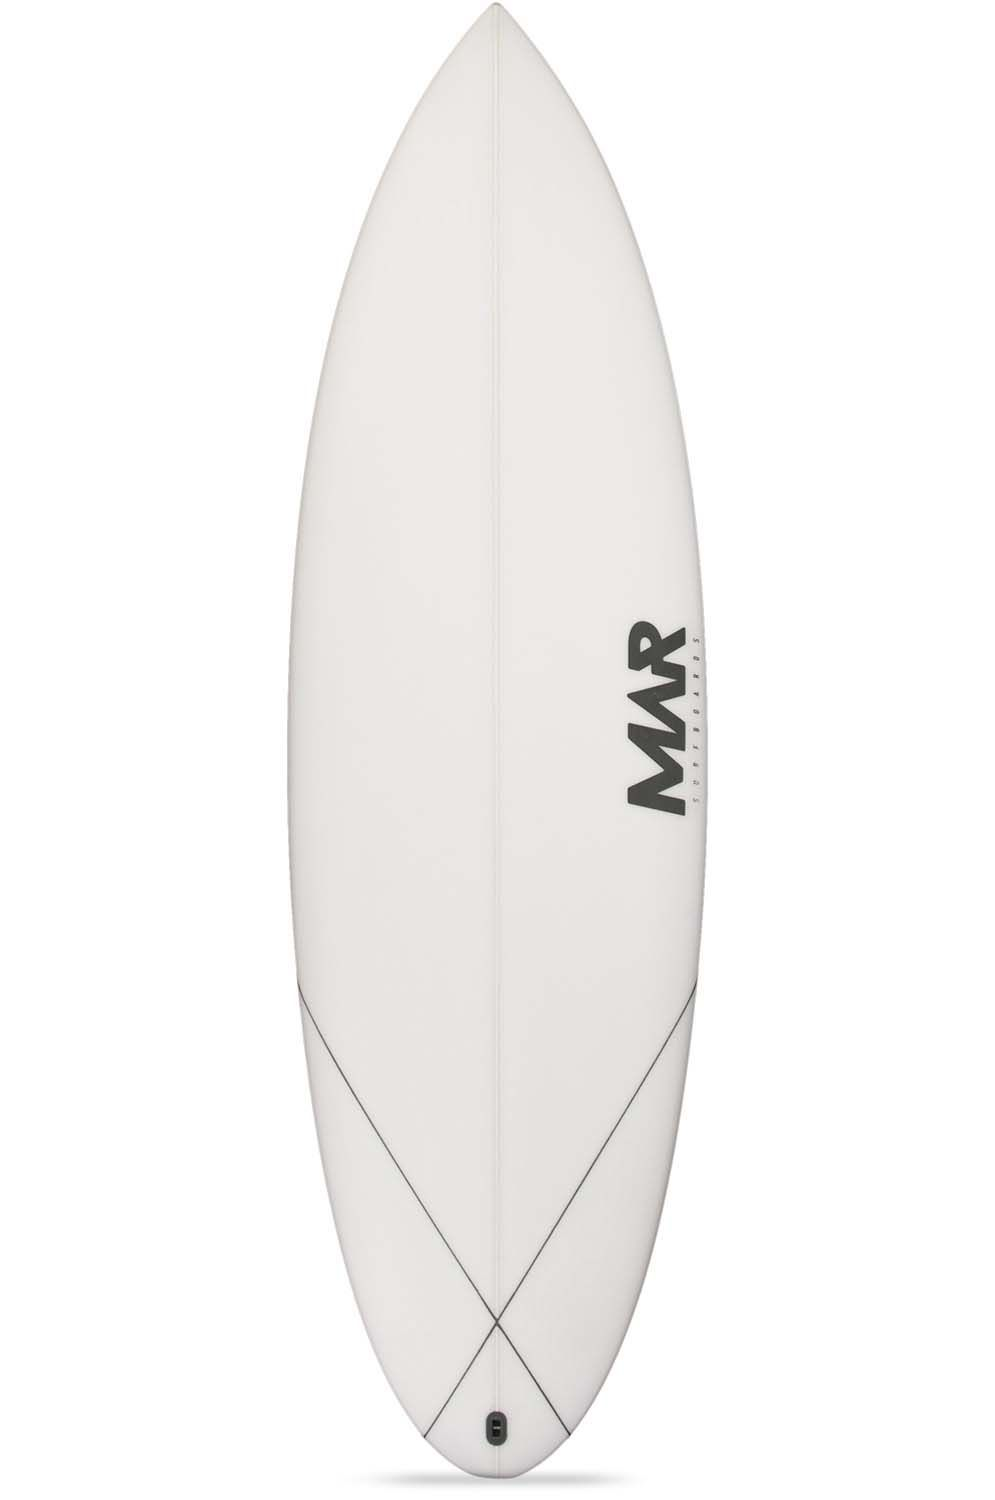 Prancha Surf Mar PARROT 5'8 Round Tail - White FCS II Multisystem 5ft8